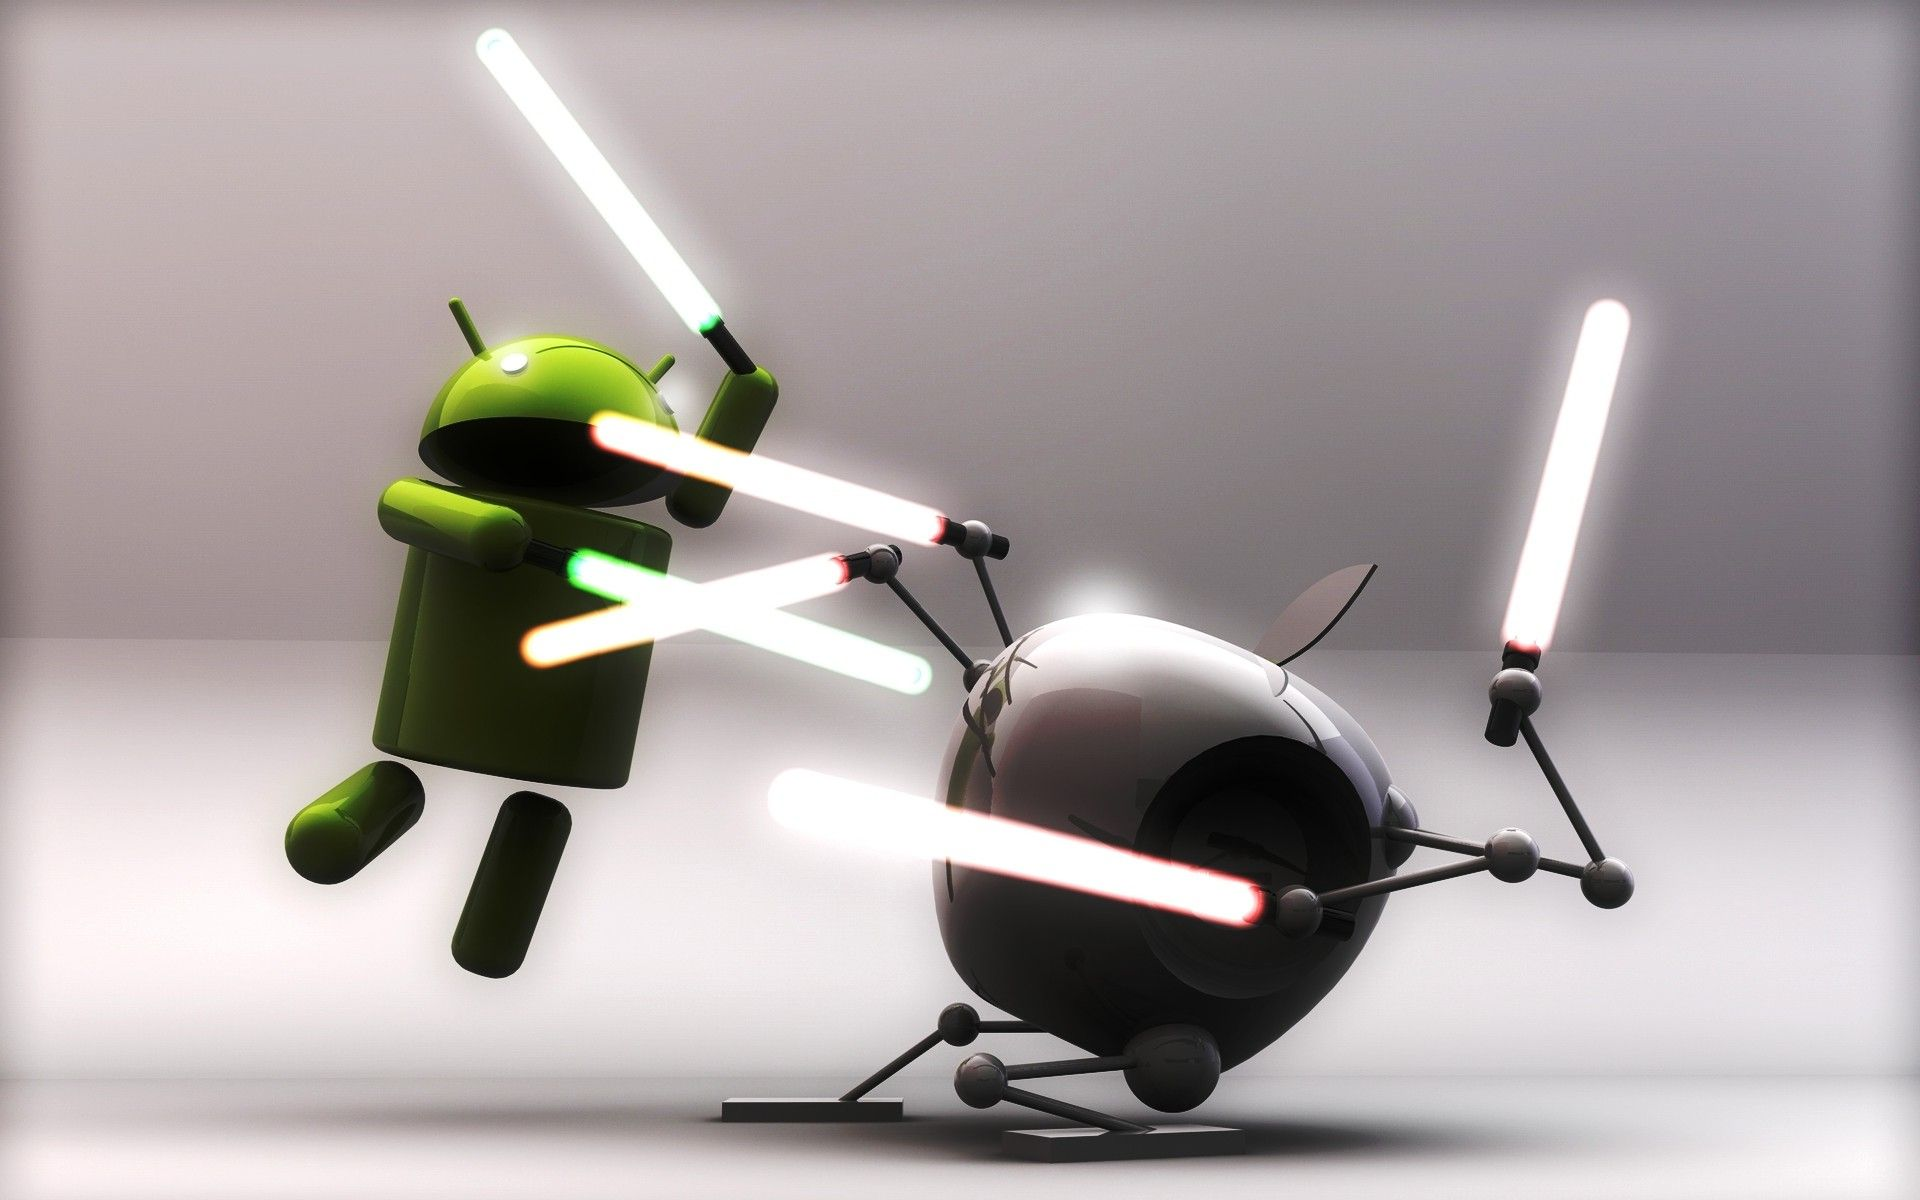 baterias: android vs ios